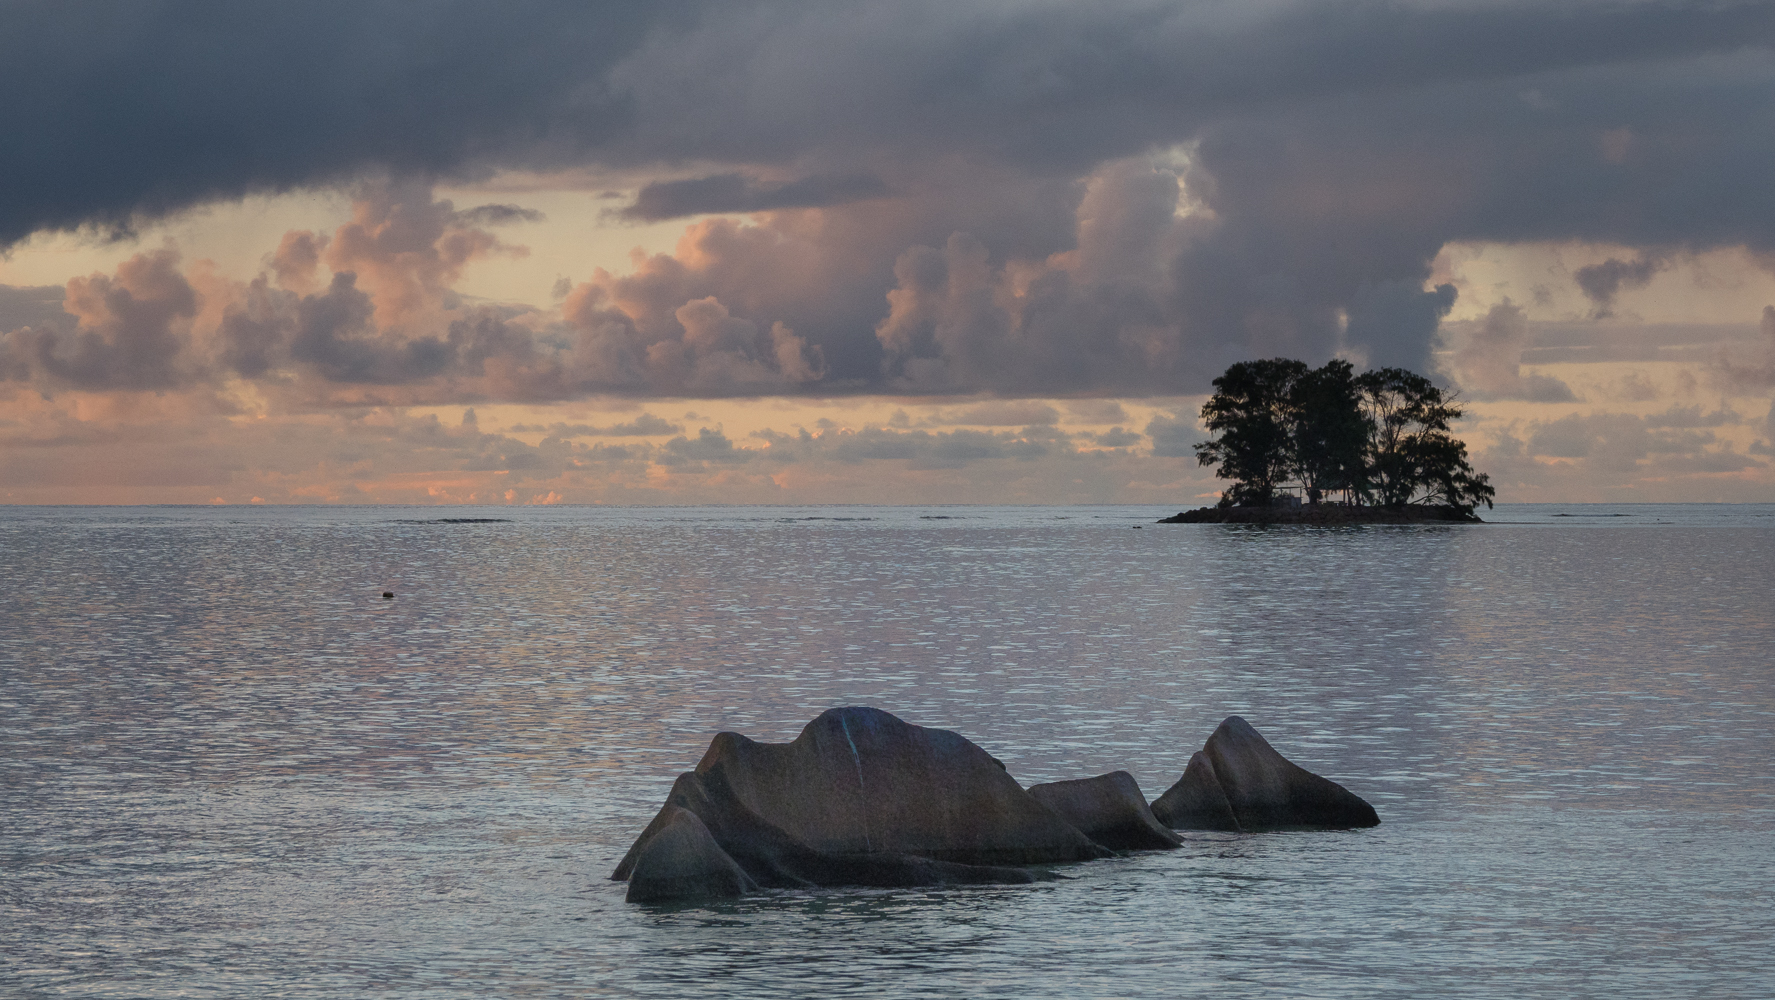 La Digue tree on the water, Seychelles